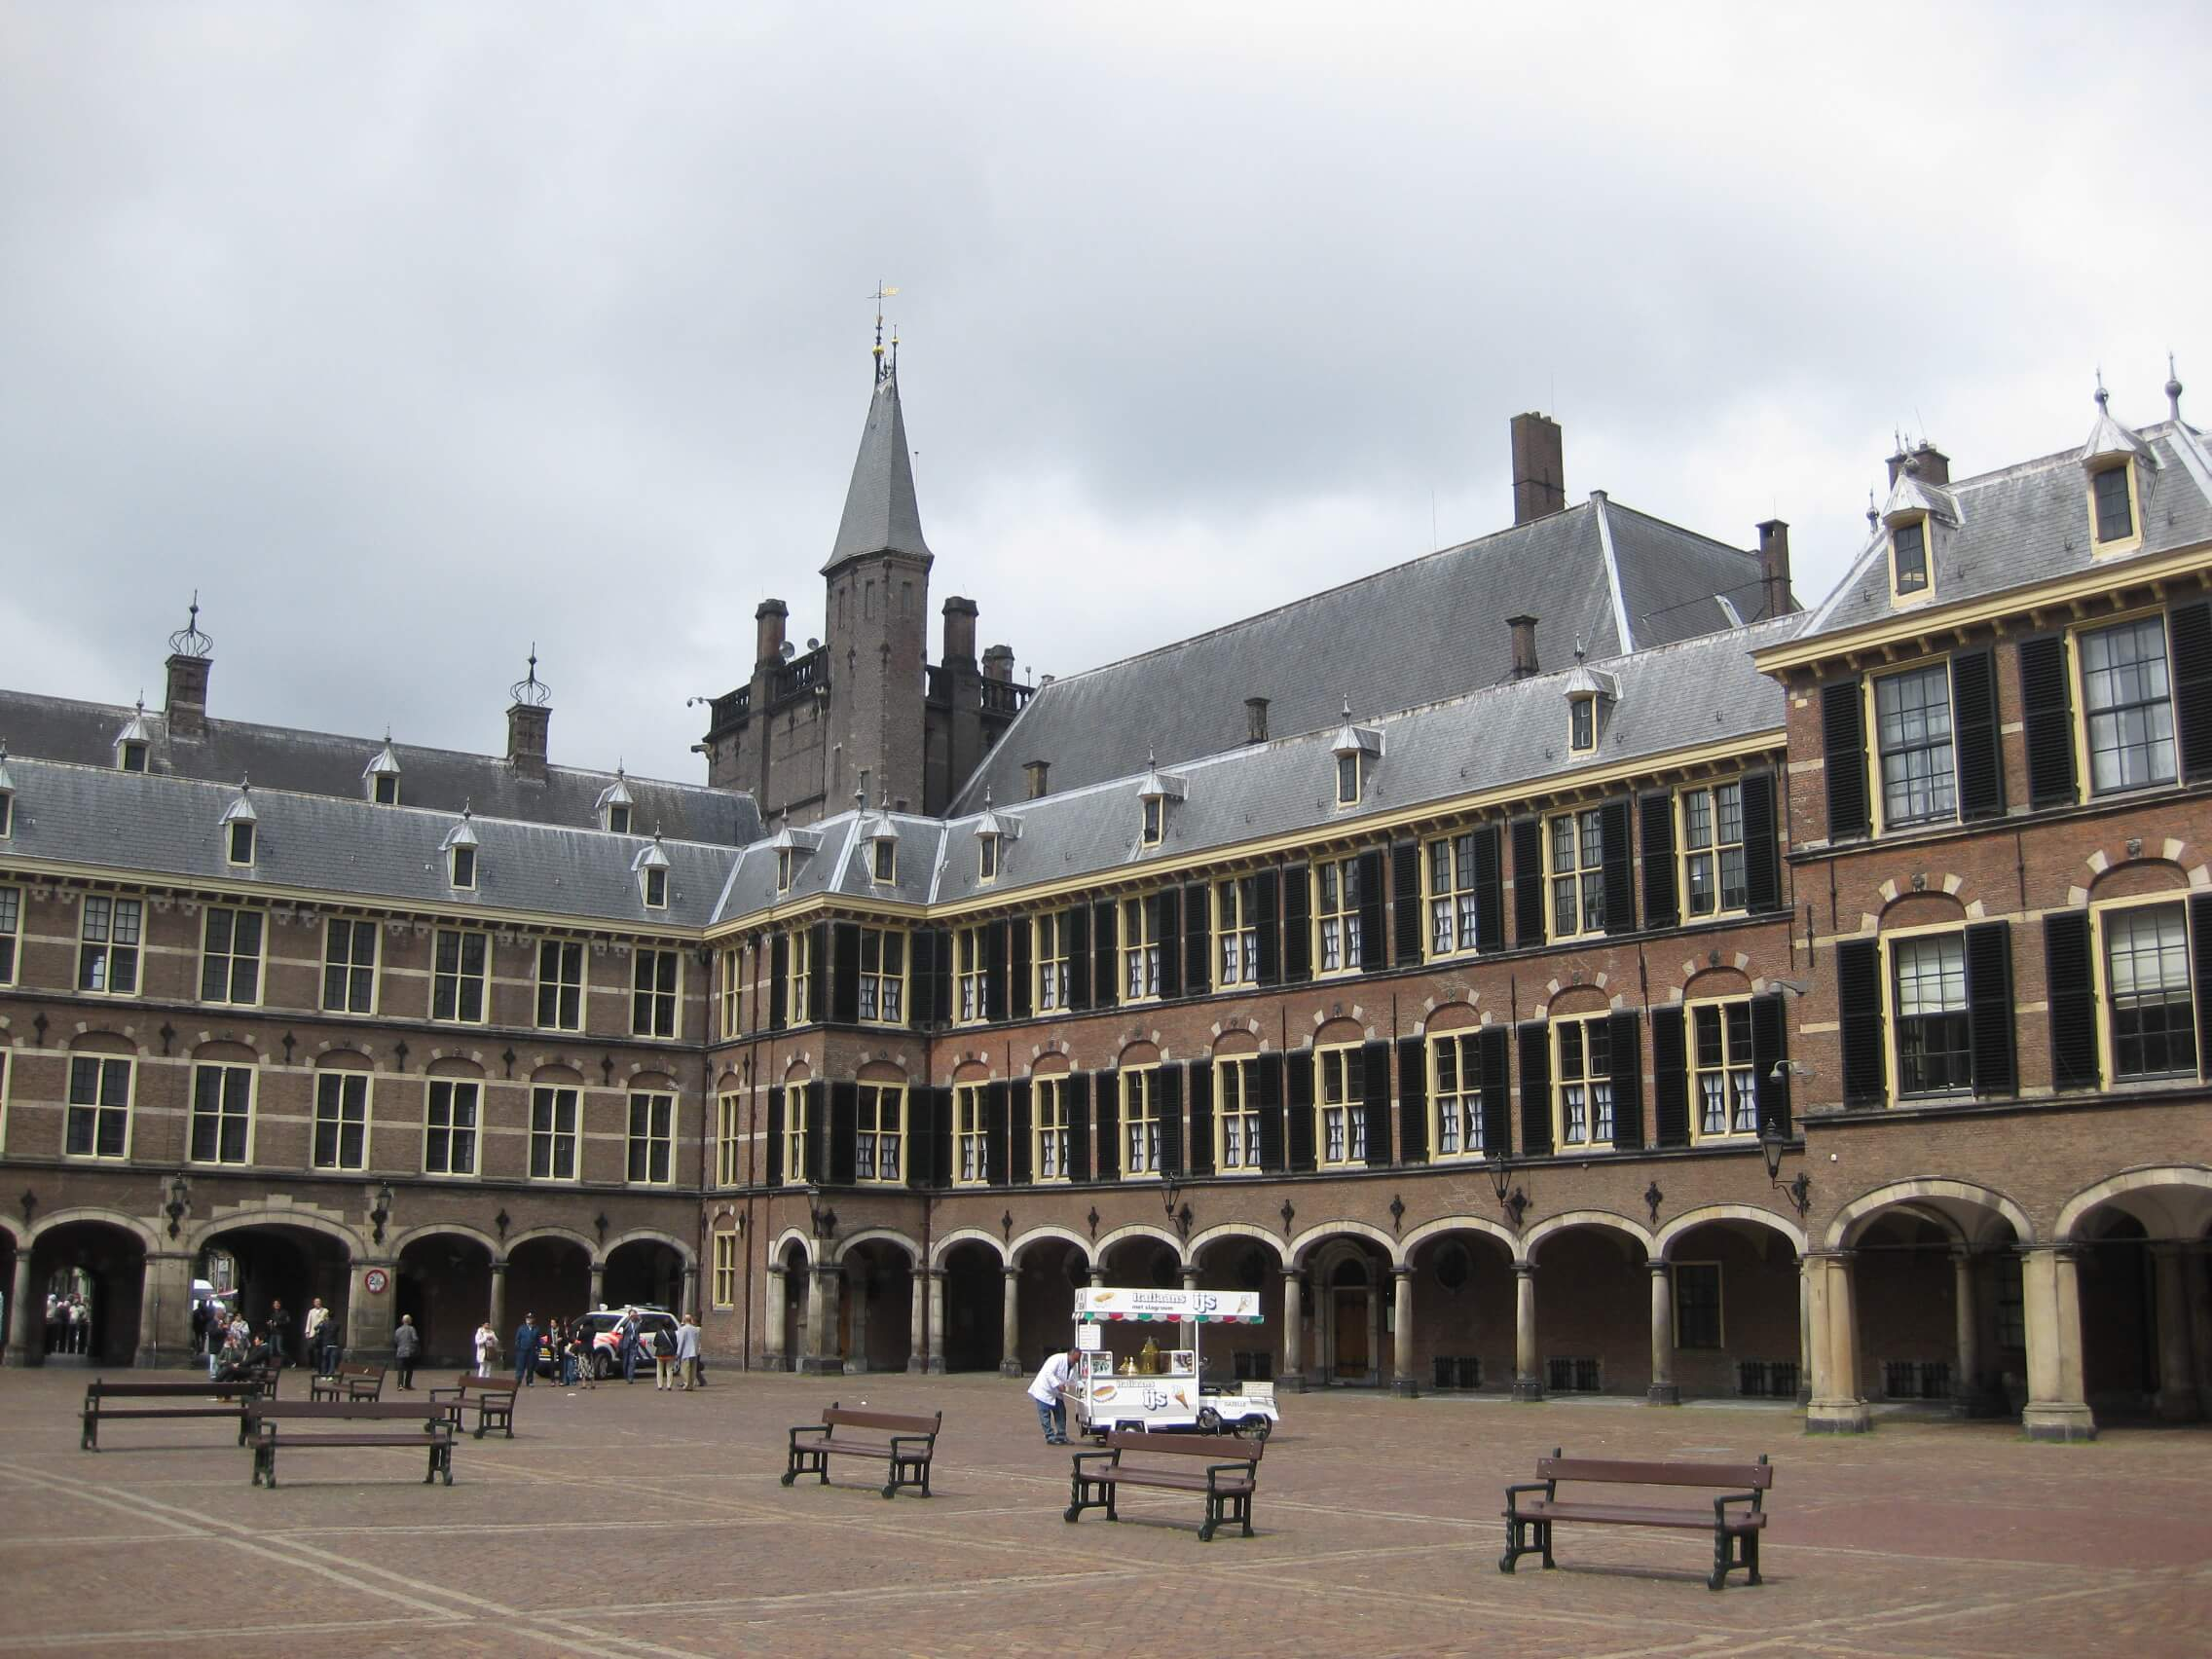 The Hague – Netherlands